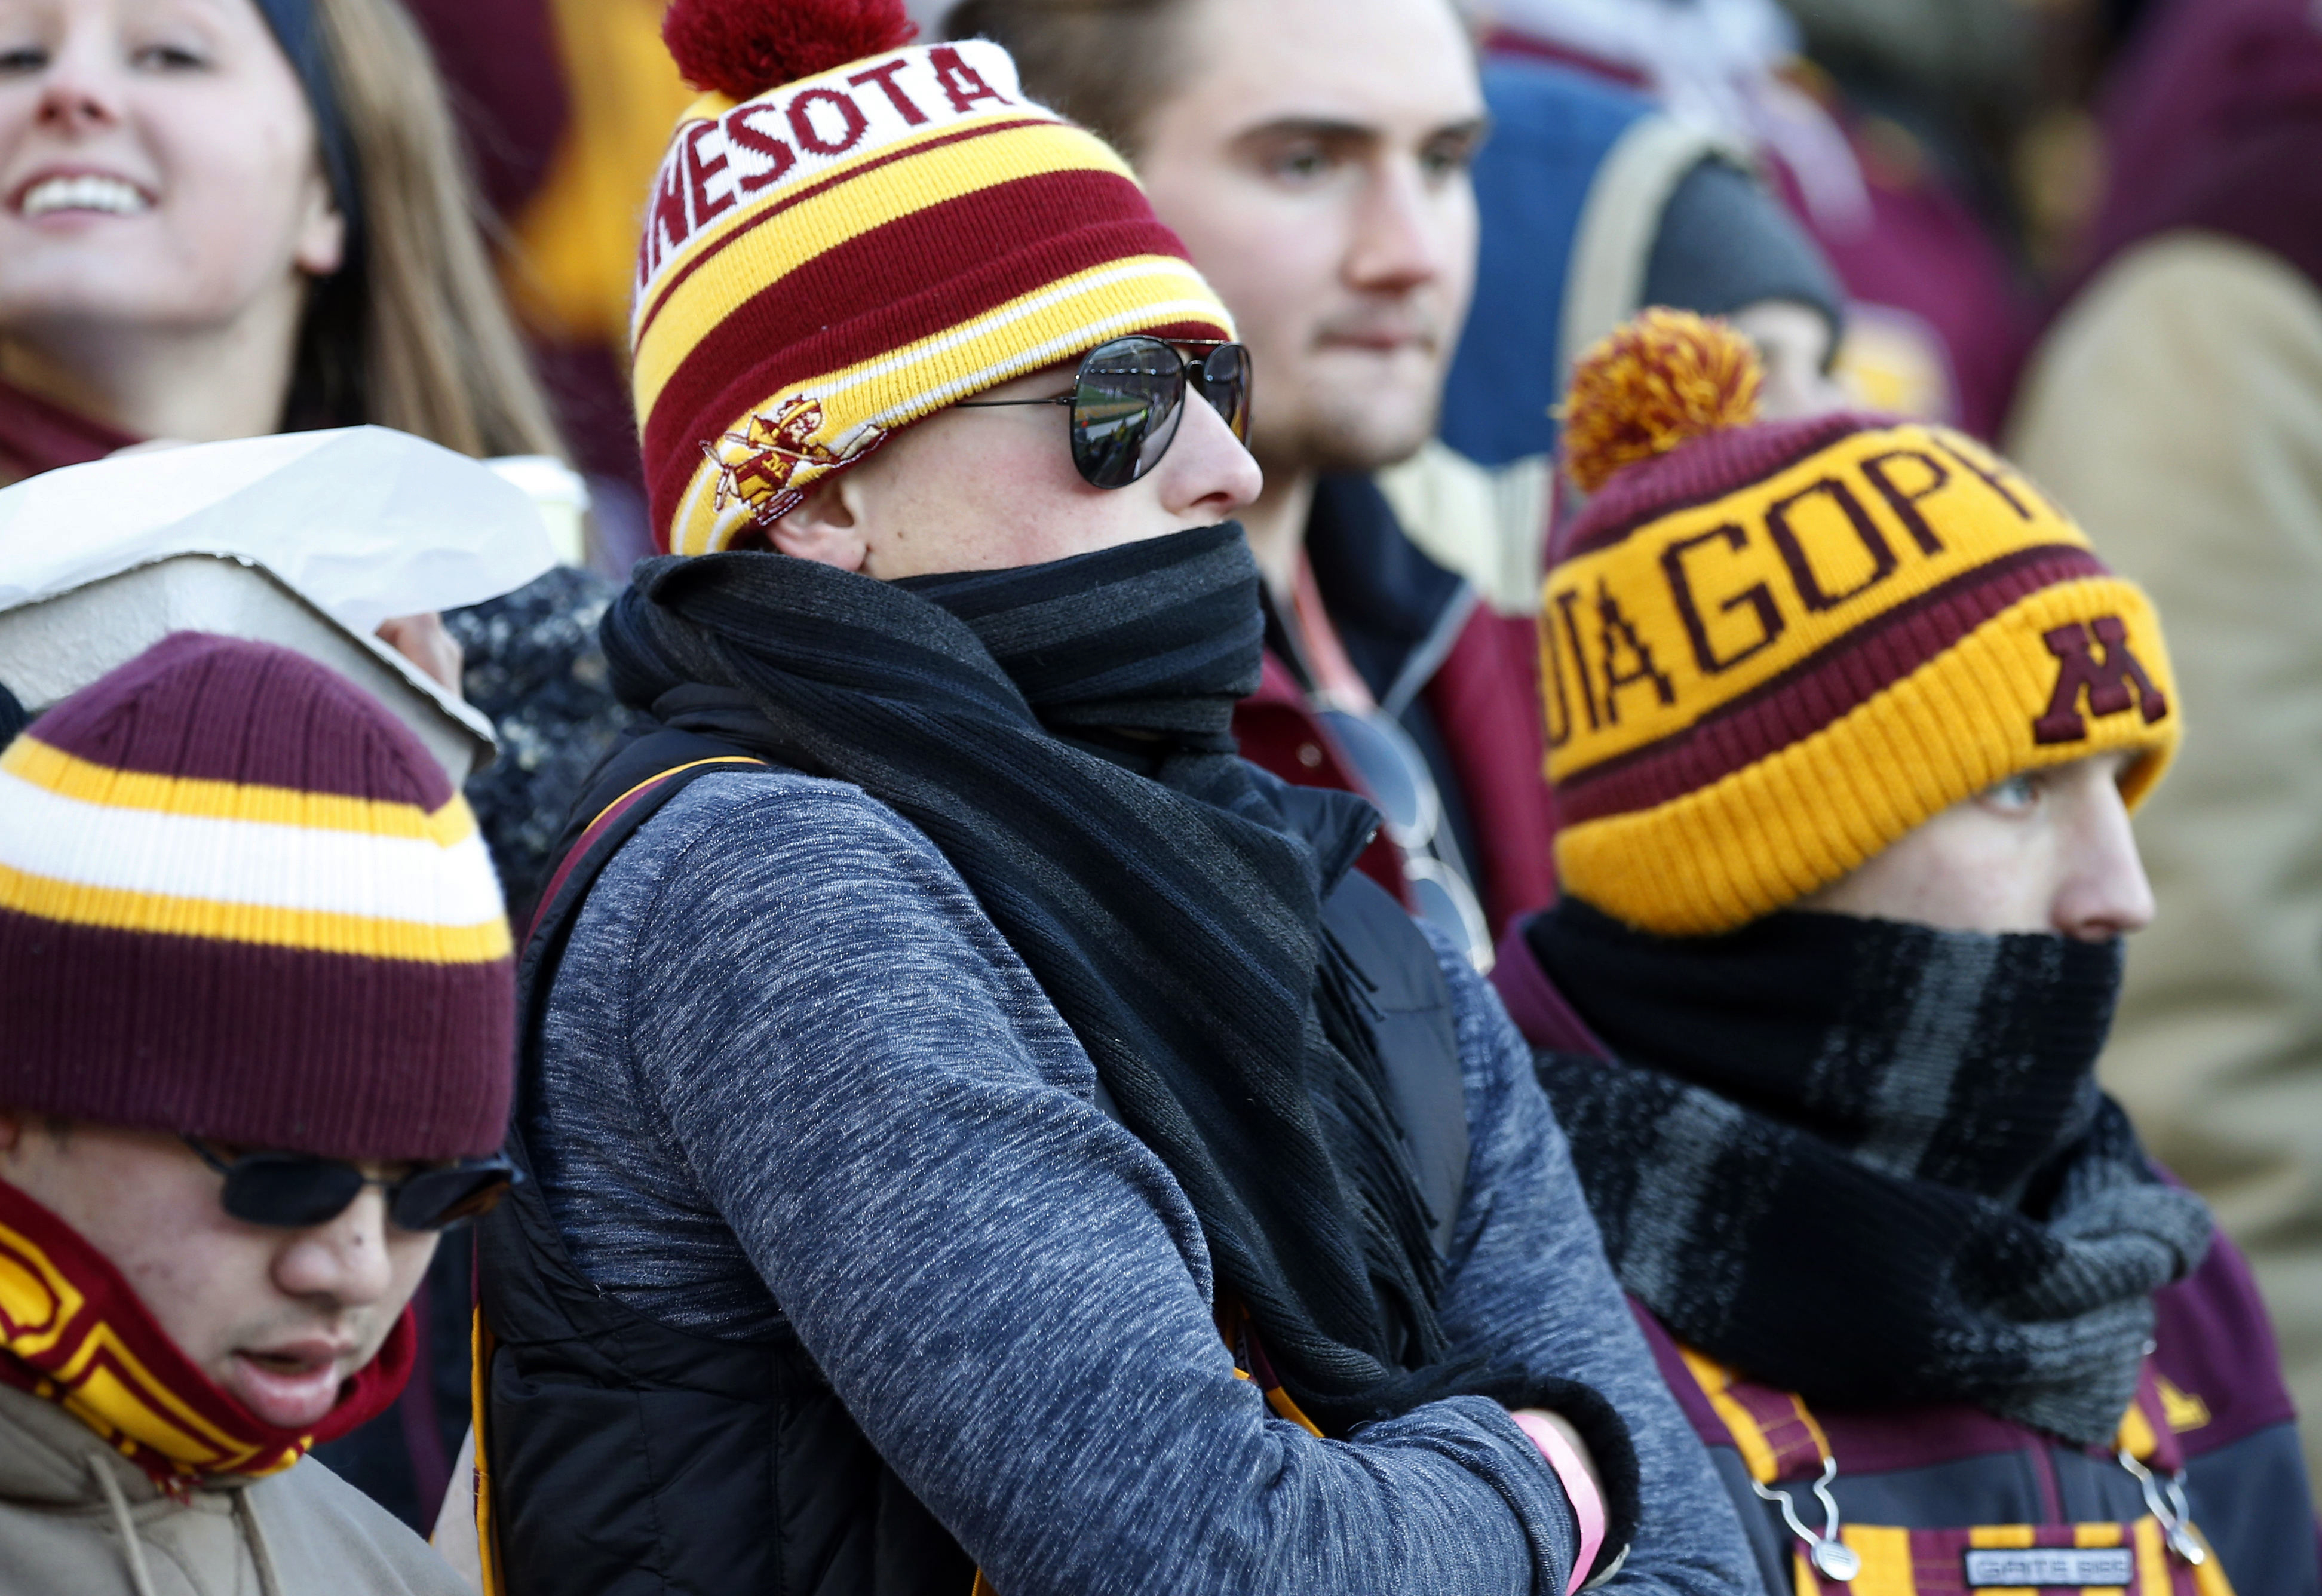 Minnesota fans brave the cold in the first half of an NCAA college football game between Minnesota and Wisconsin, Saturday, Nov. 28, 2015, in Minneapolis. (AP Photo/Jim Mone)